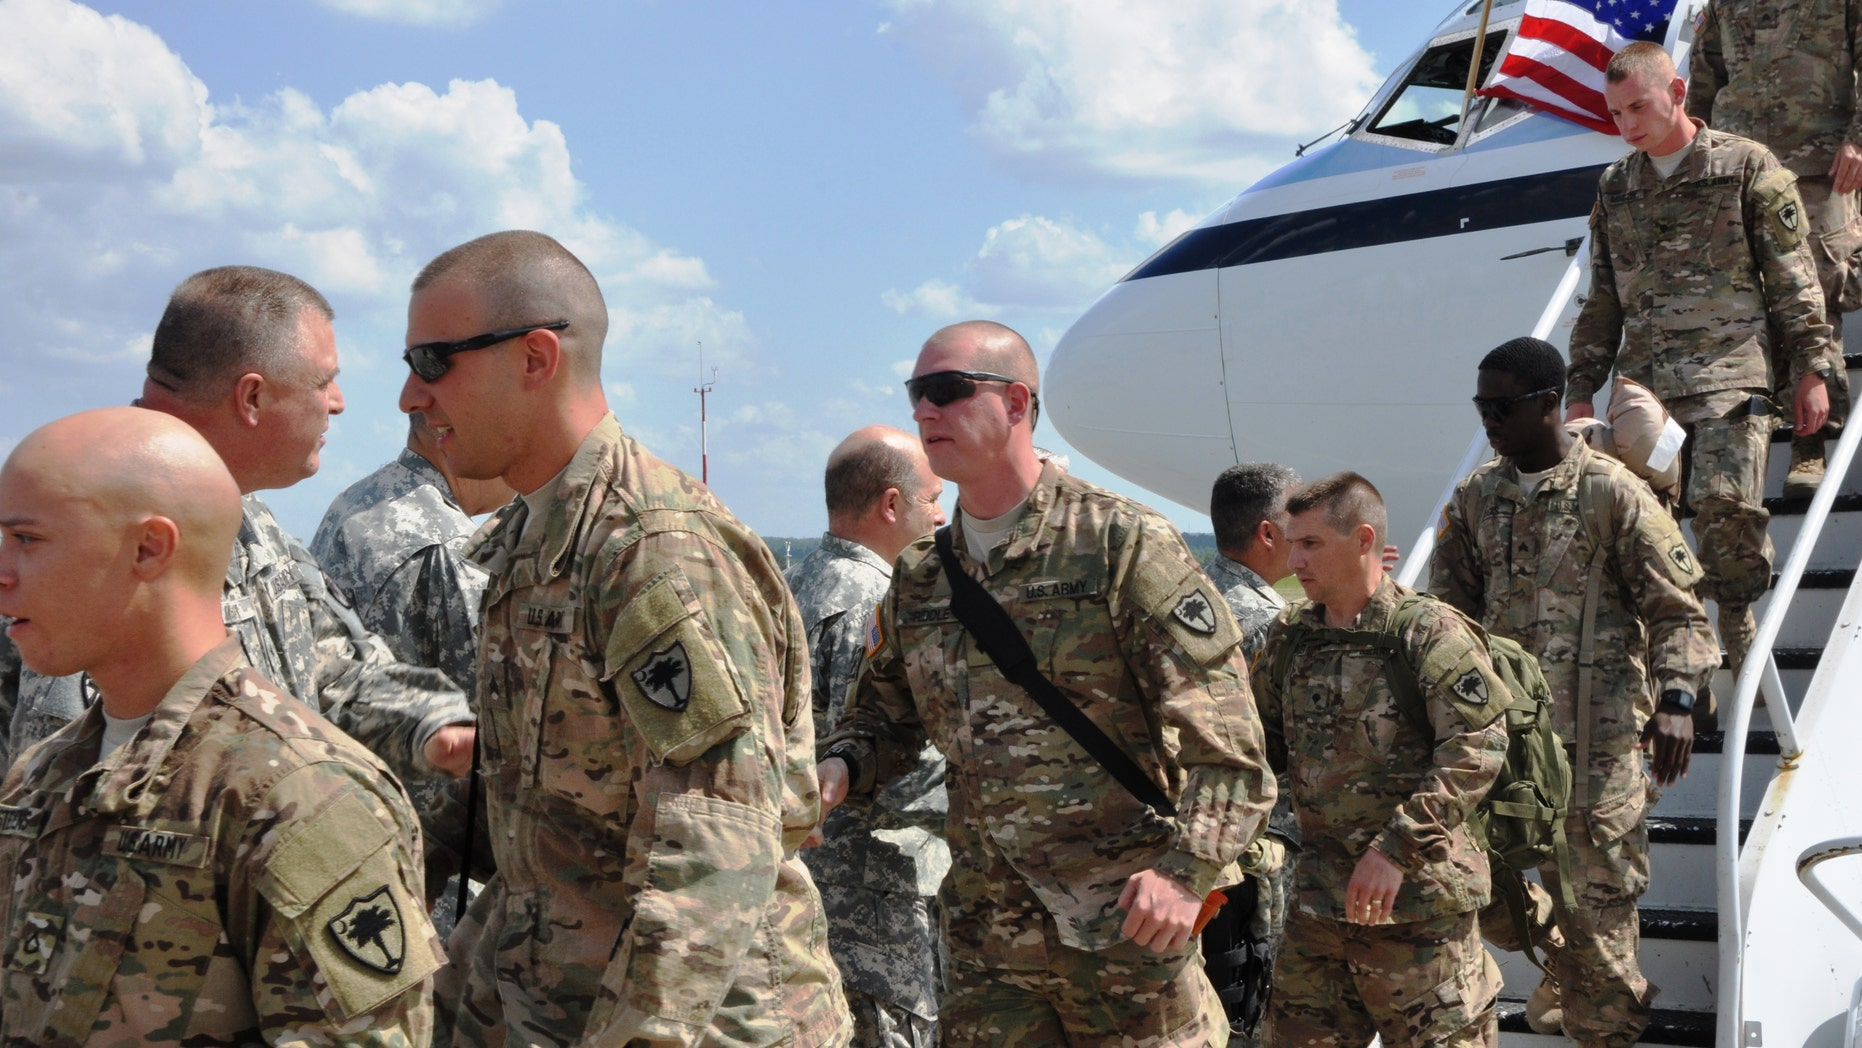 May 14, 2014:  U.S. Army Soldiers in the 1223rd Engineer Company, S.C. Army National Guard returning to Columbia, SC.